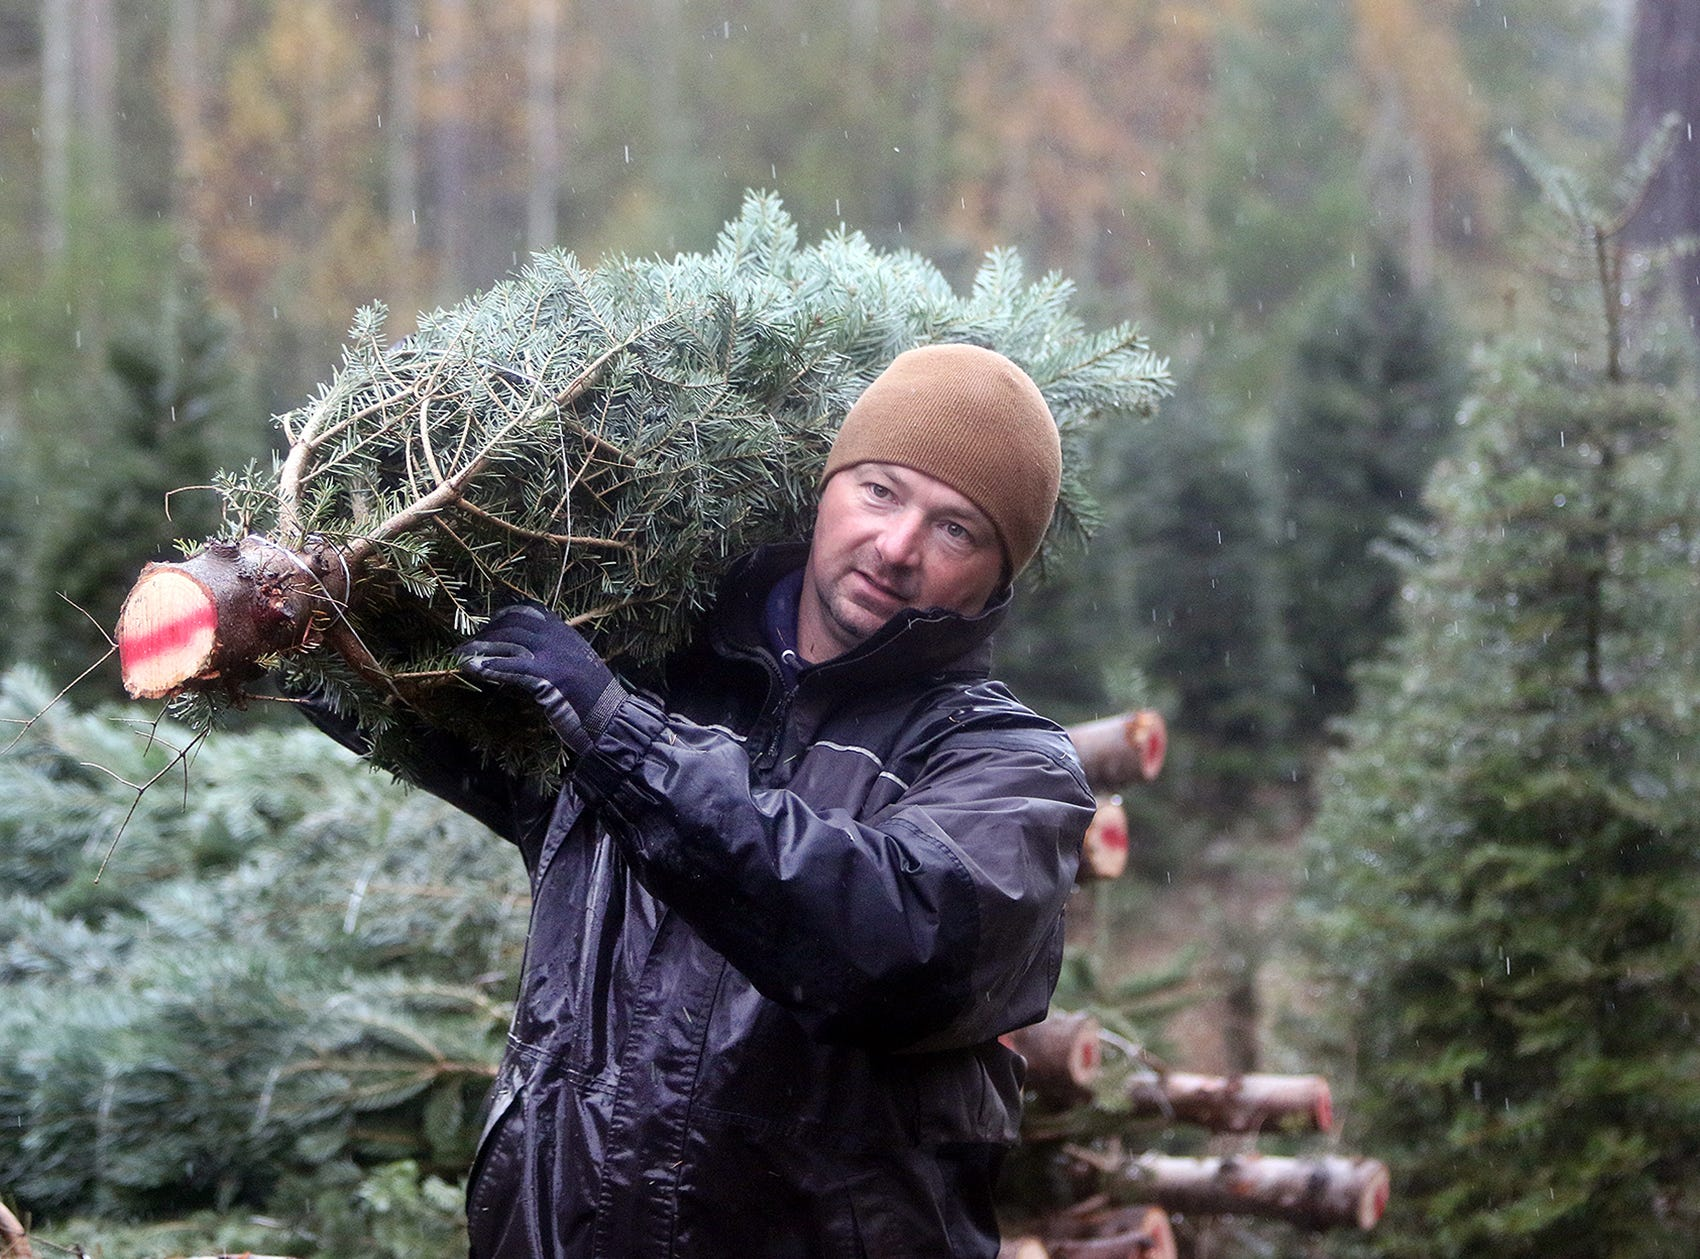 Josh Olmsted moves a cut Christmas tree to a truck to be loaded for a run to Seattle on Wednesday, November, 21, 2018 at the tree farm in Poulsbo. The family has run a tree business for 50 years. Friday, November 23, is the opening day for the Poulsbo U-cut tree farm.